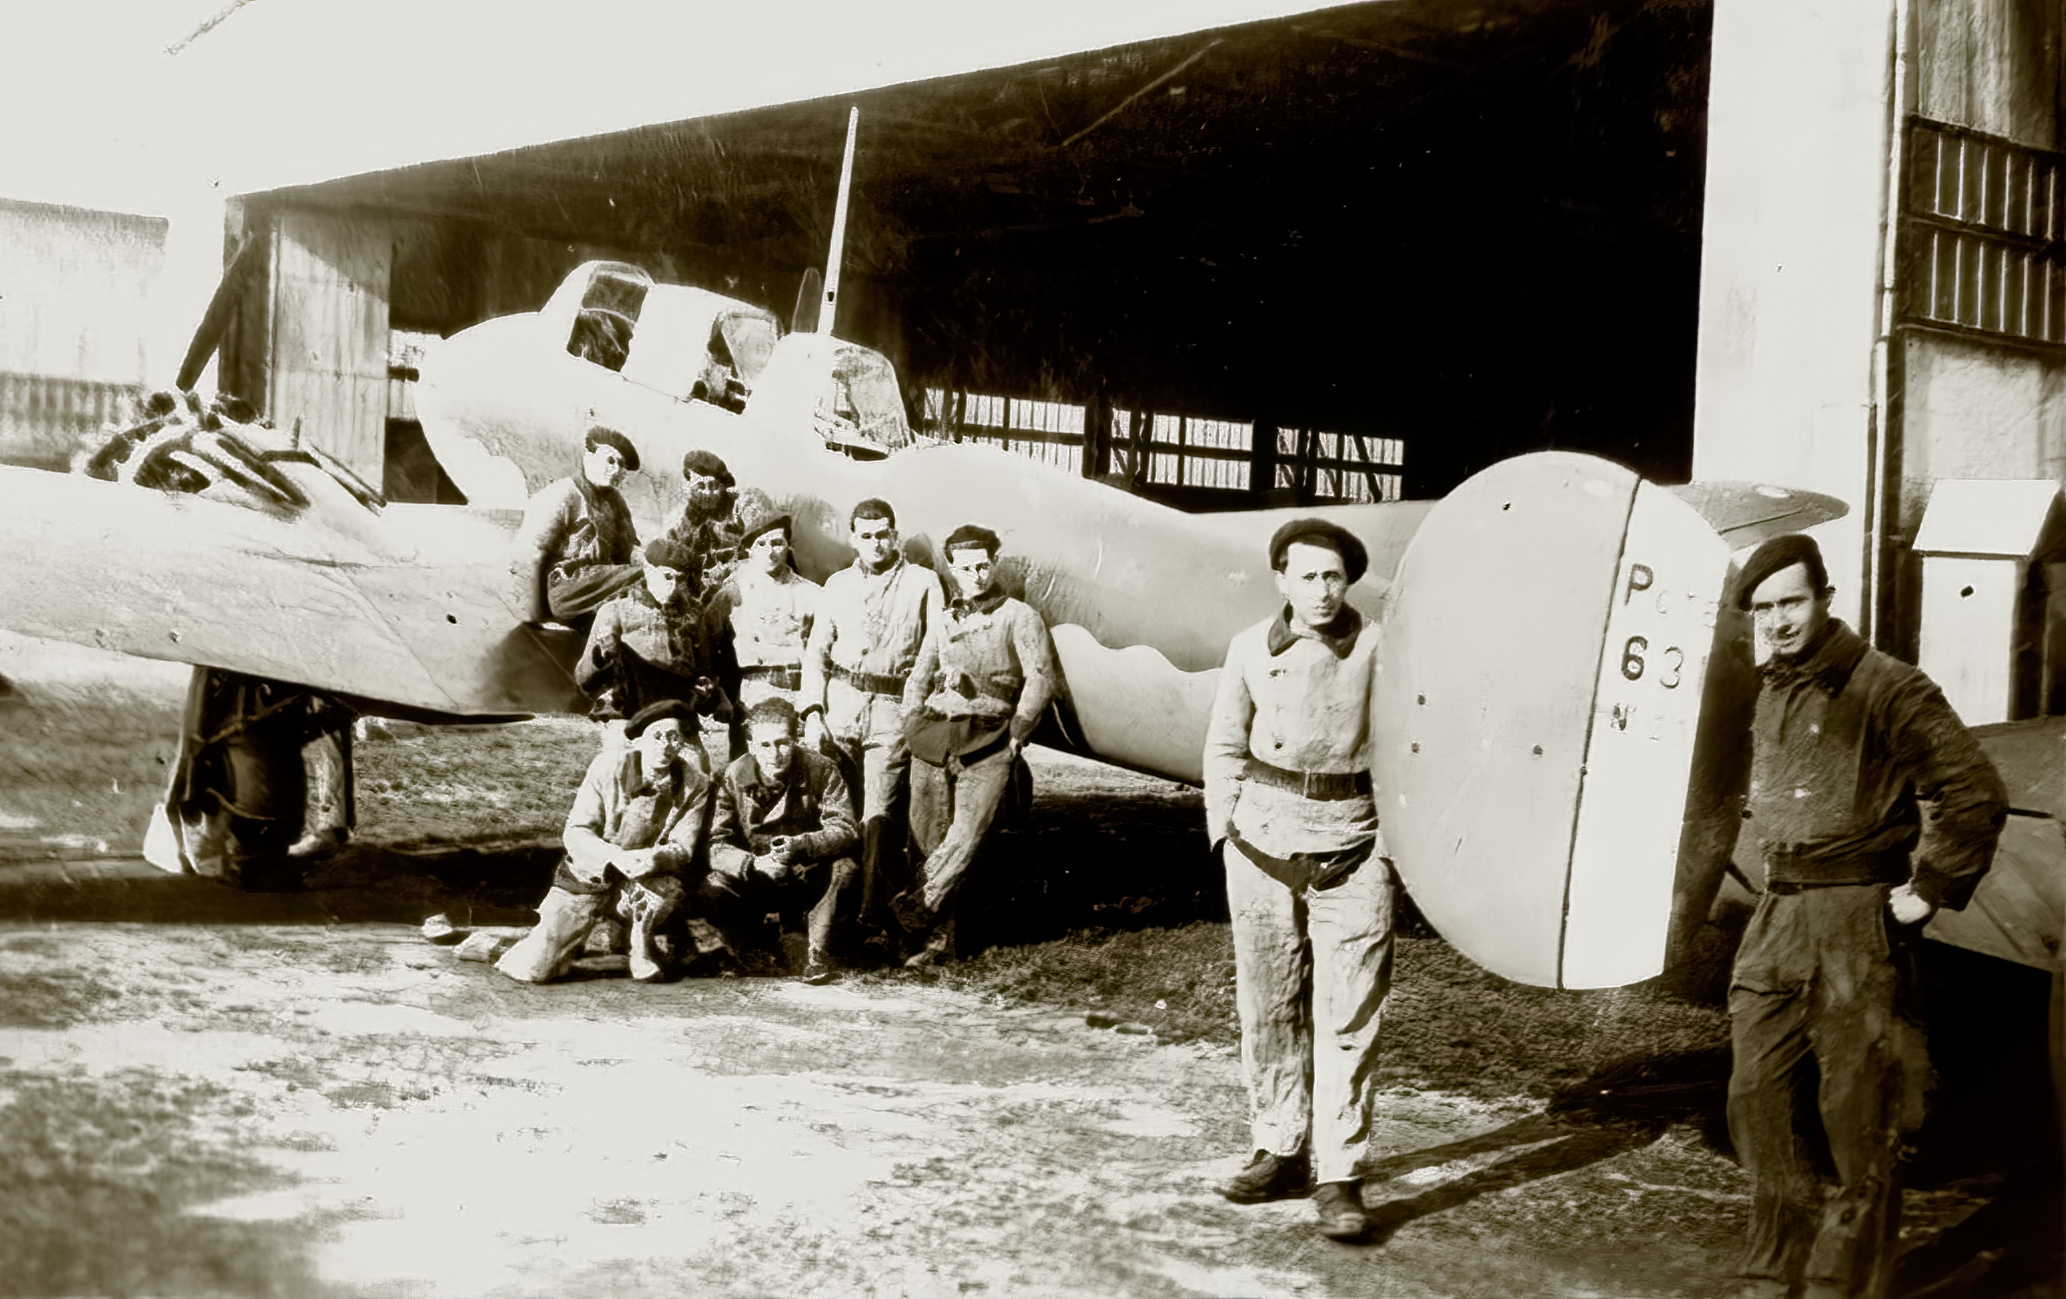 French Airforce Potez 631 sn210 with French crew phoney war France 1940 ebay 01